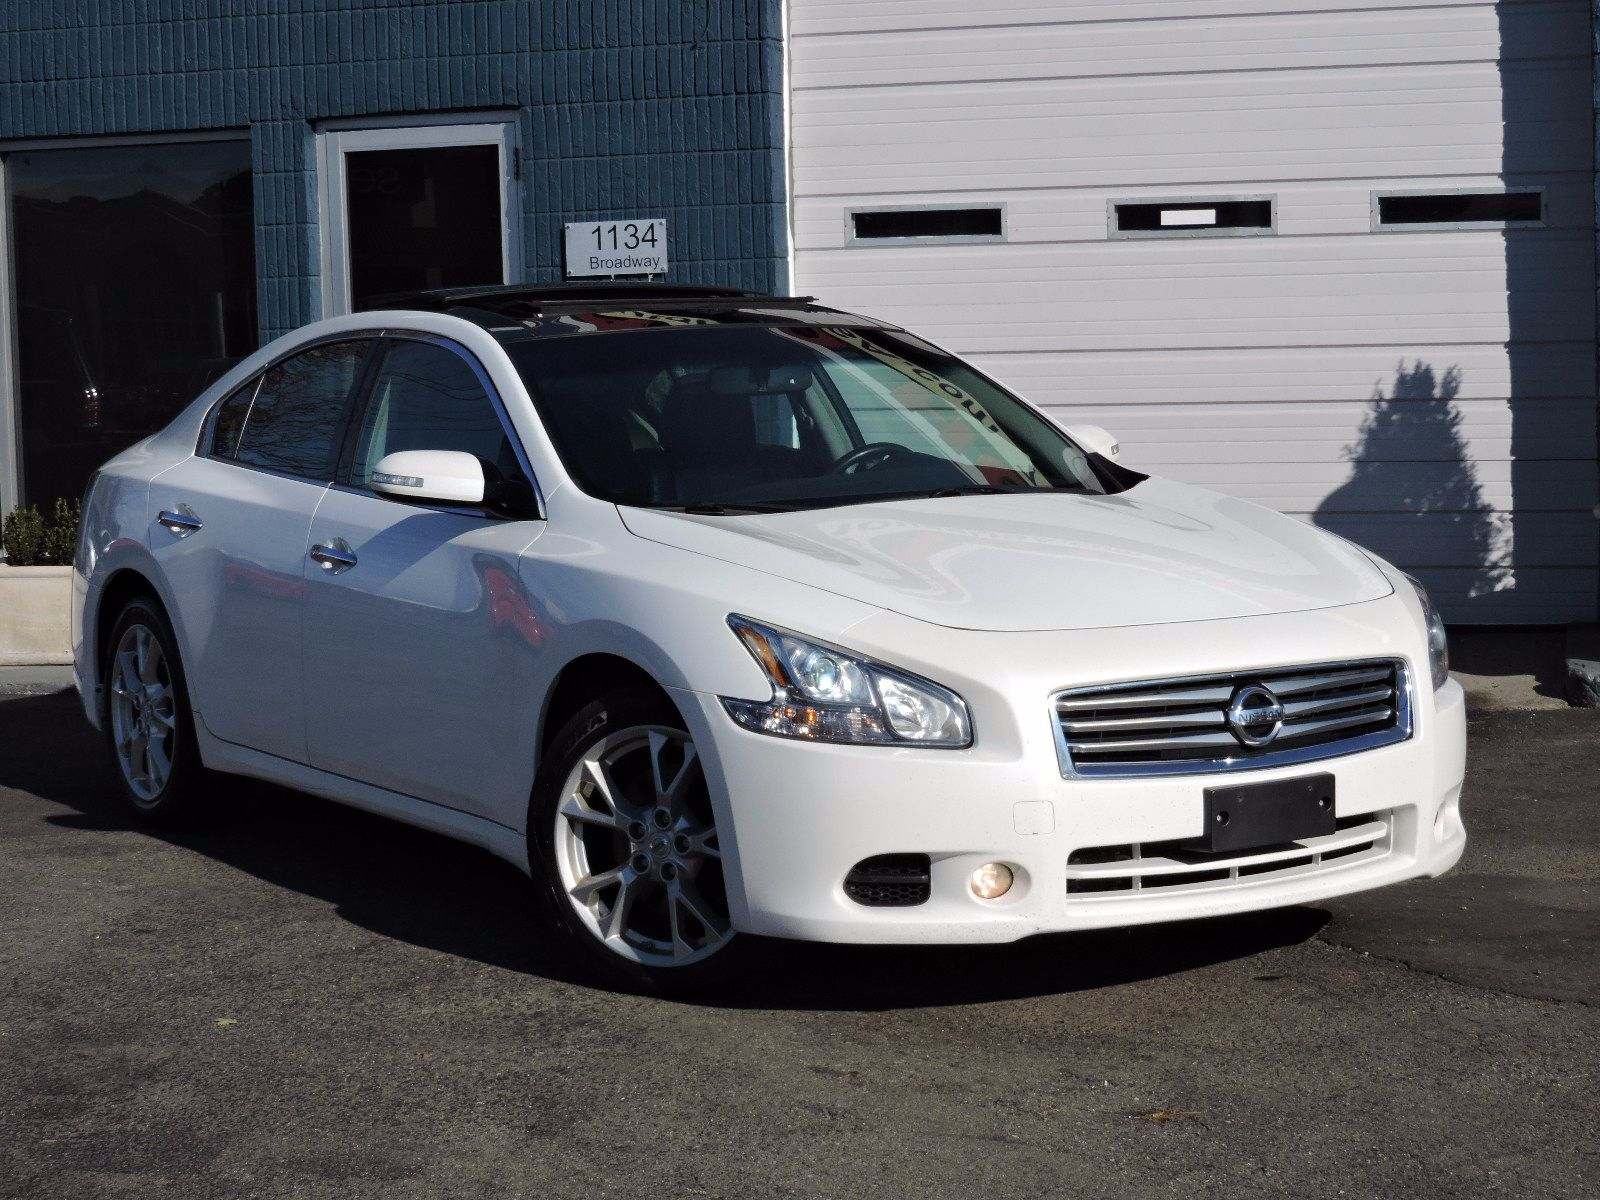 14541495 as well 2430072 besides 2016 Nissan Altima 738a43470a0e0aea25c8385011f73444 in addition 382019152501 besides Rental Cars. on nissan keyless entry remote